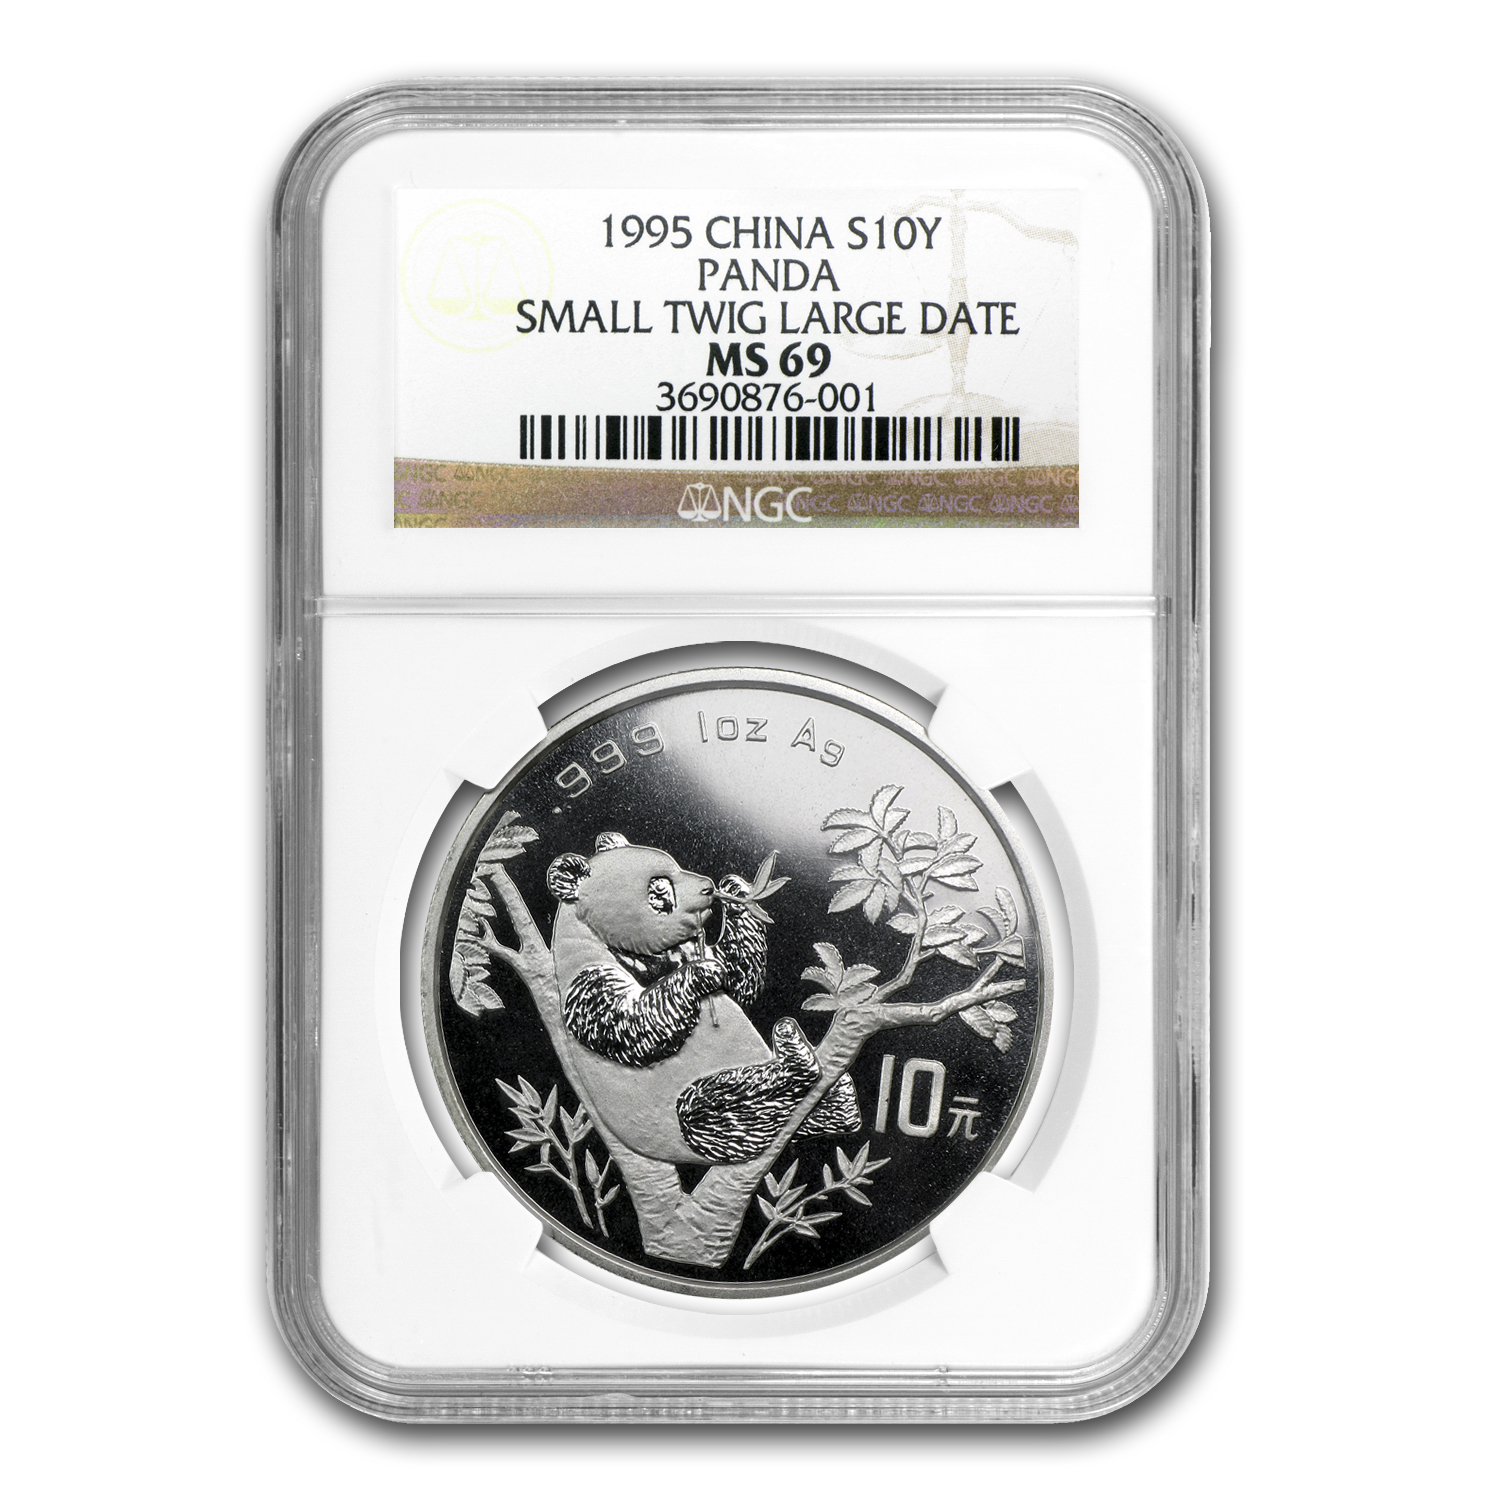 1995 China 1 oz Silver Panda MS-69 NGC (Small Twig, Large Date)